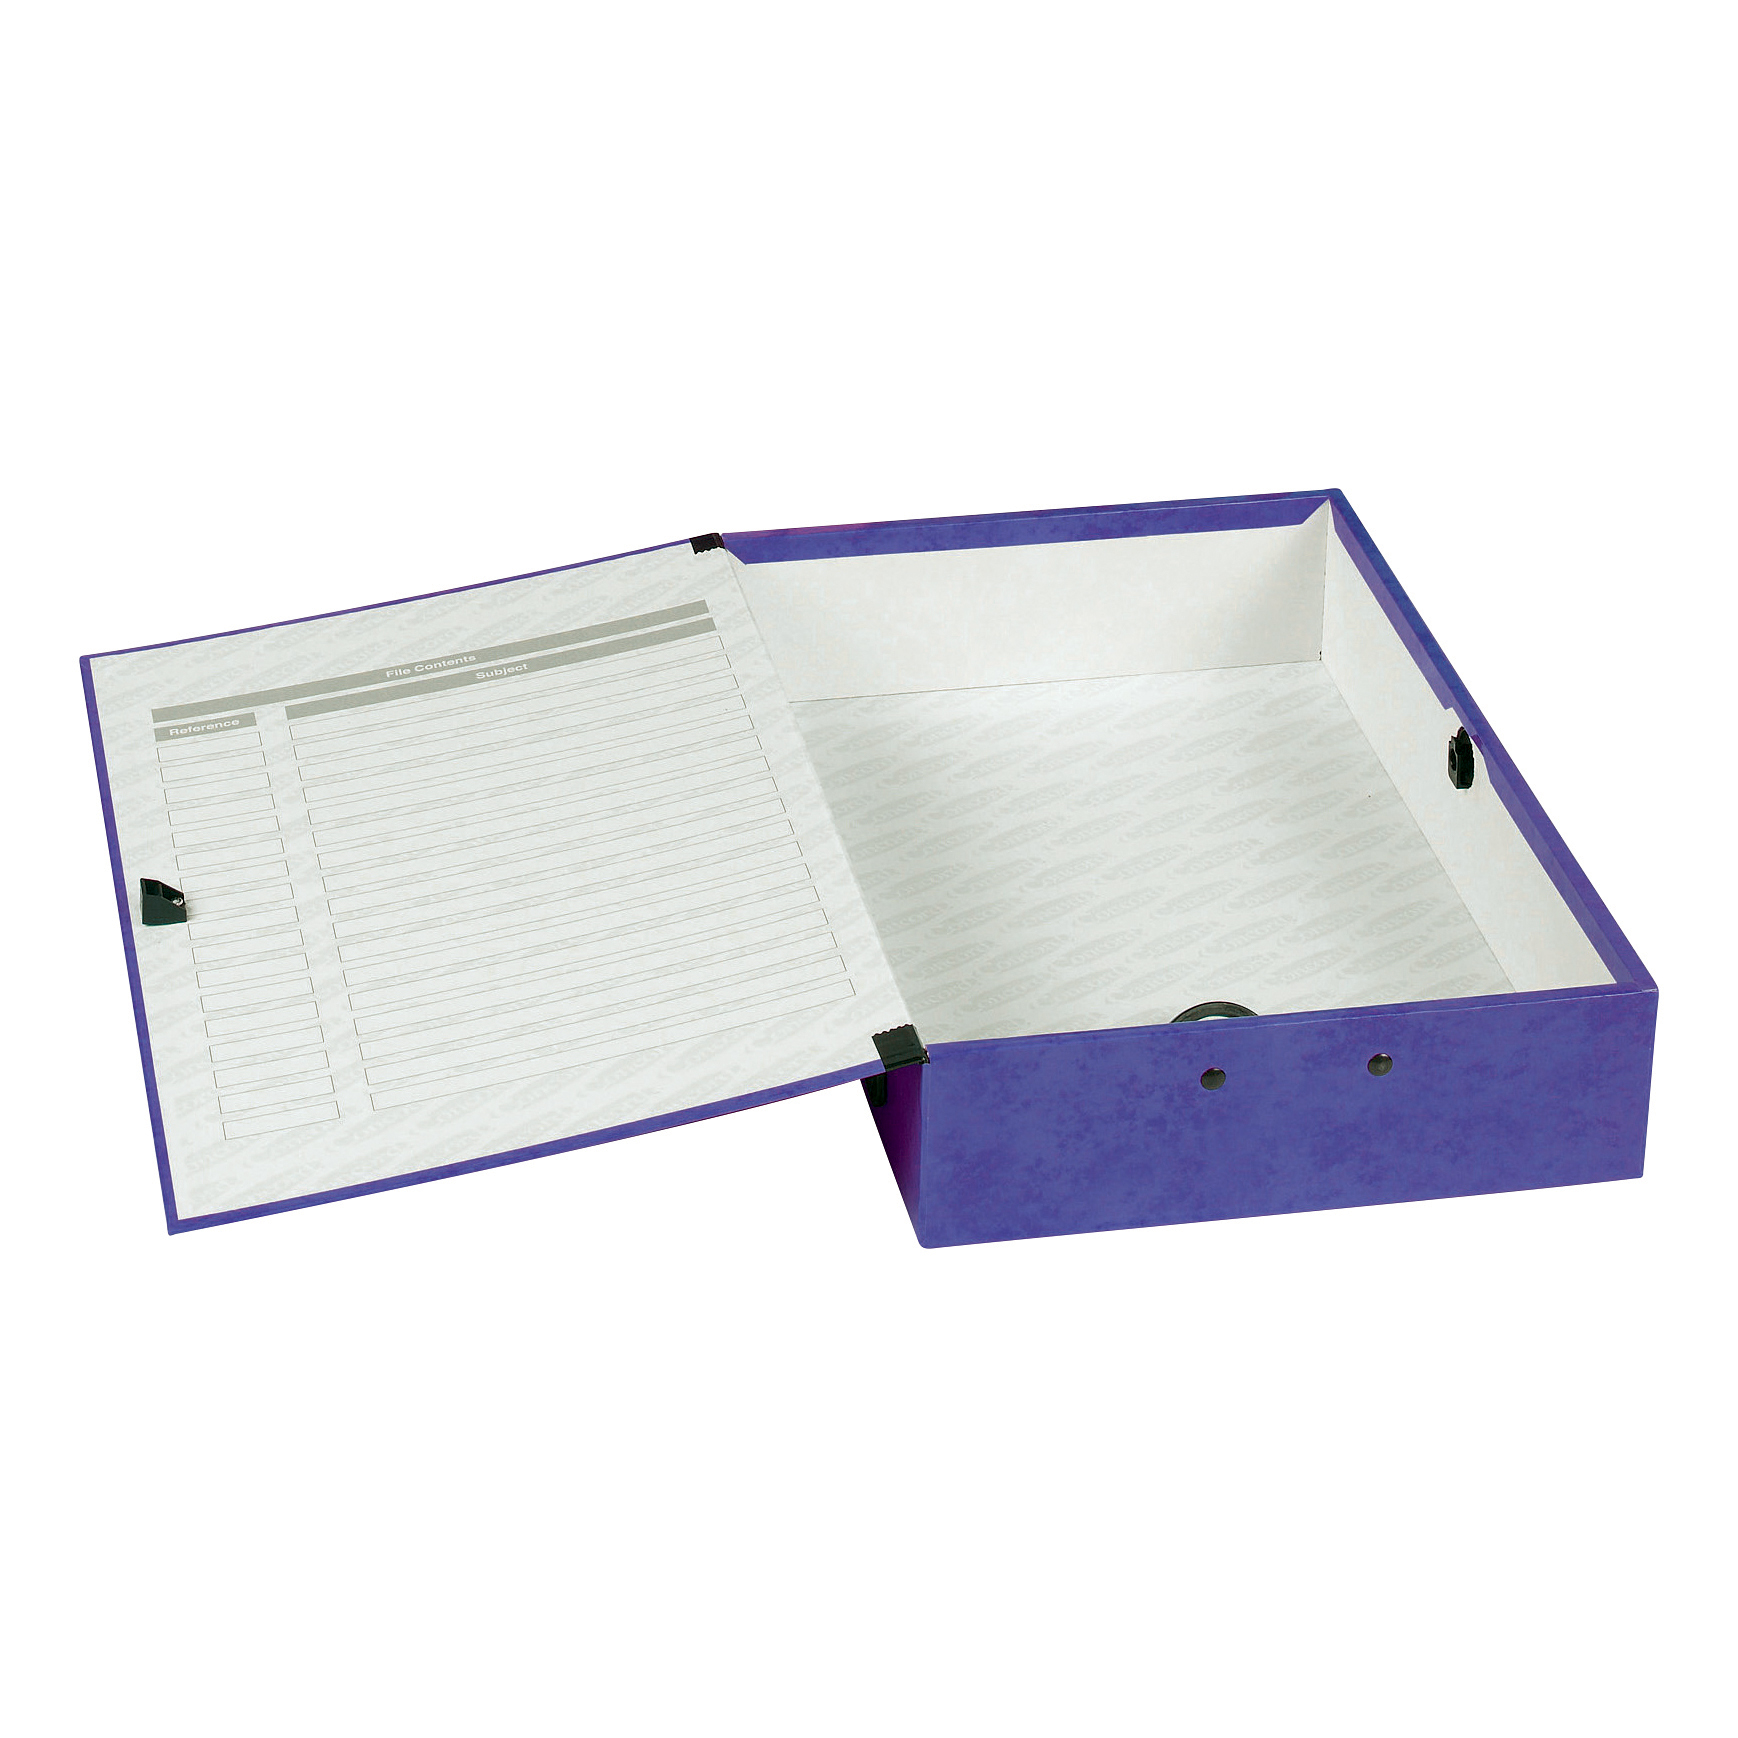 Concord Contrast Box File Laminated 75mm Spine Foolscap Purple Ref 13484 Pack 5